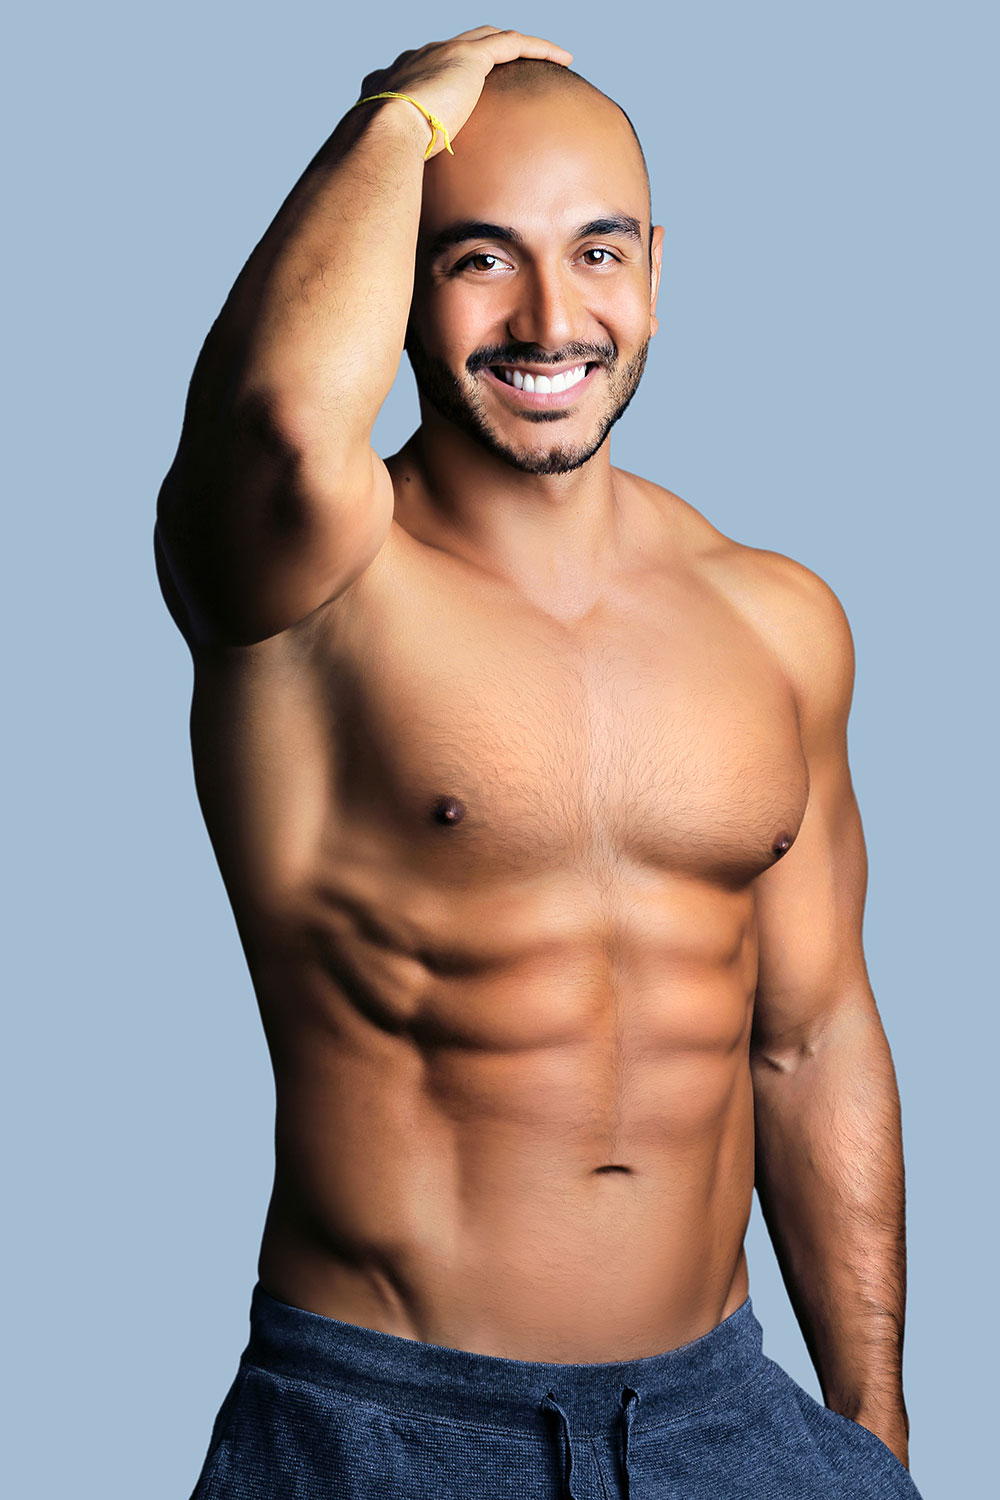 body muscles reshaping, chest hair retouching on a model man sample